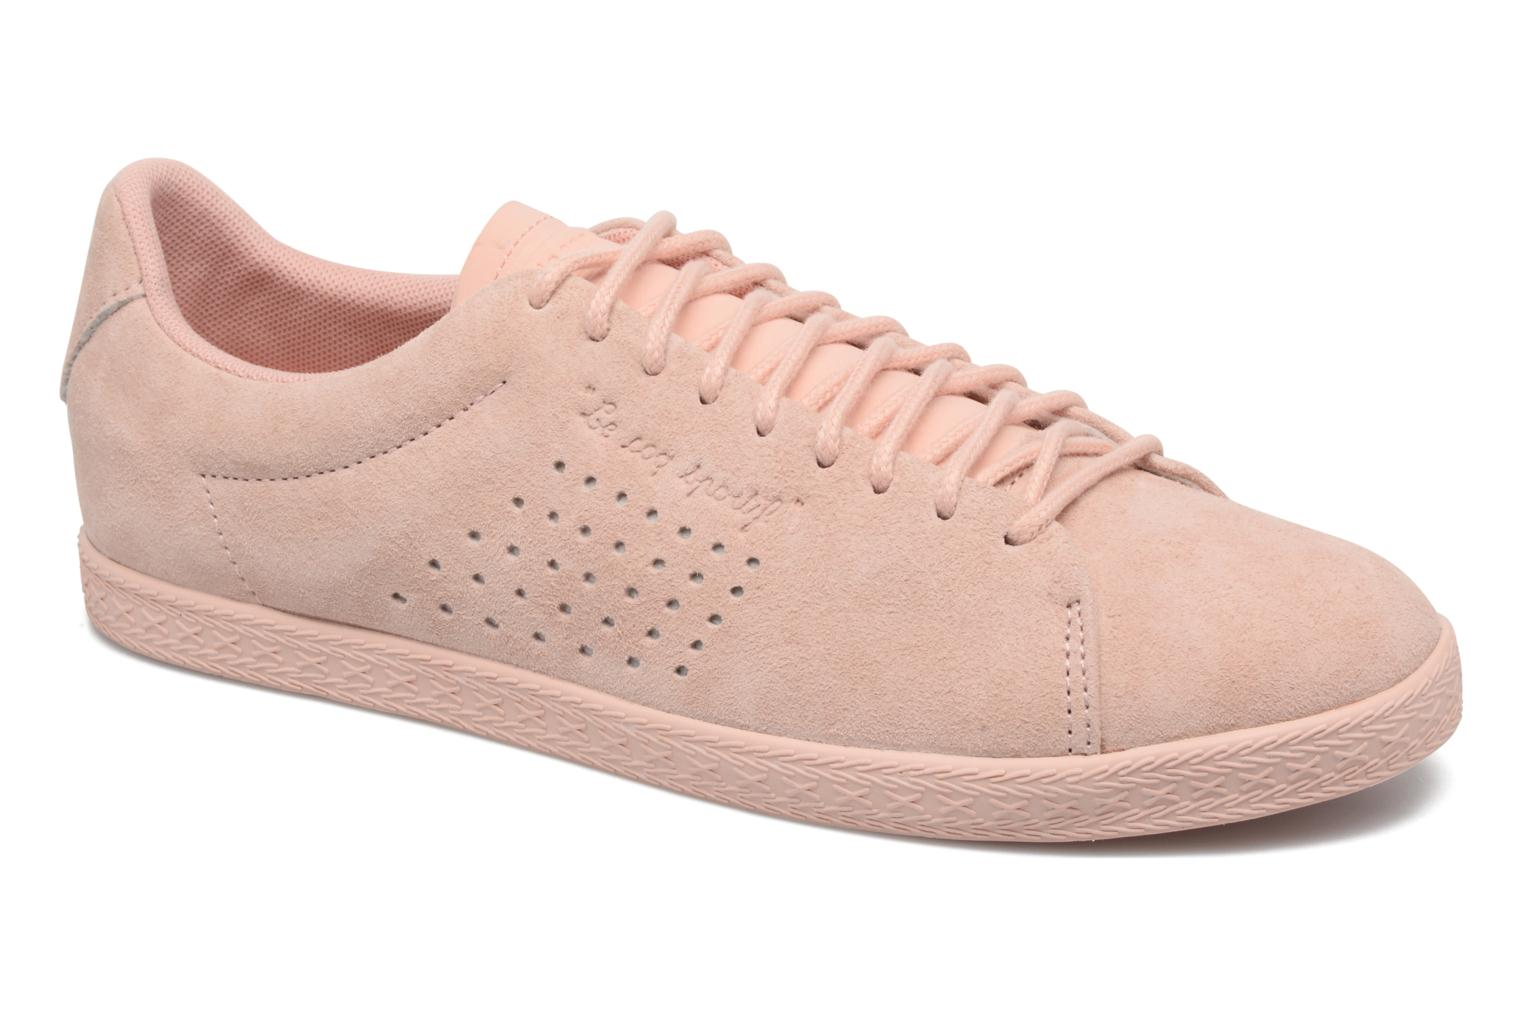 Le Rose Charline Coq Cloud Sportif Nubuck nnqS8r4A